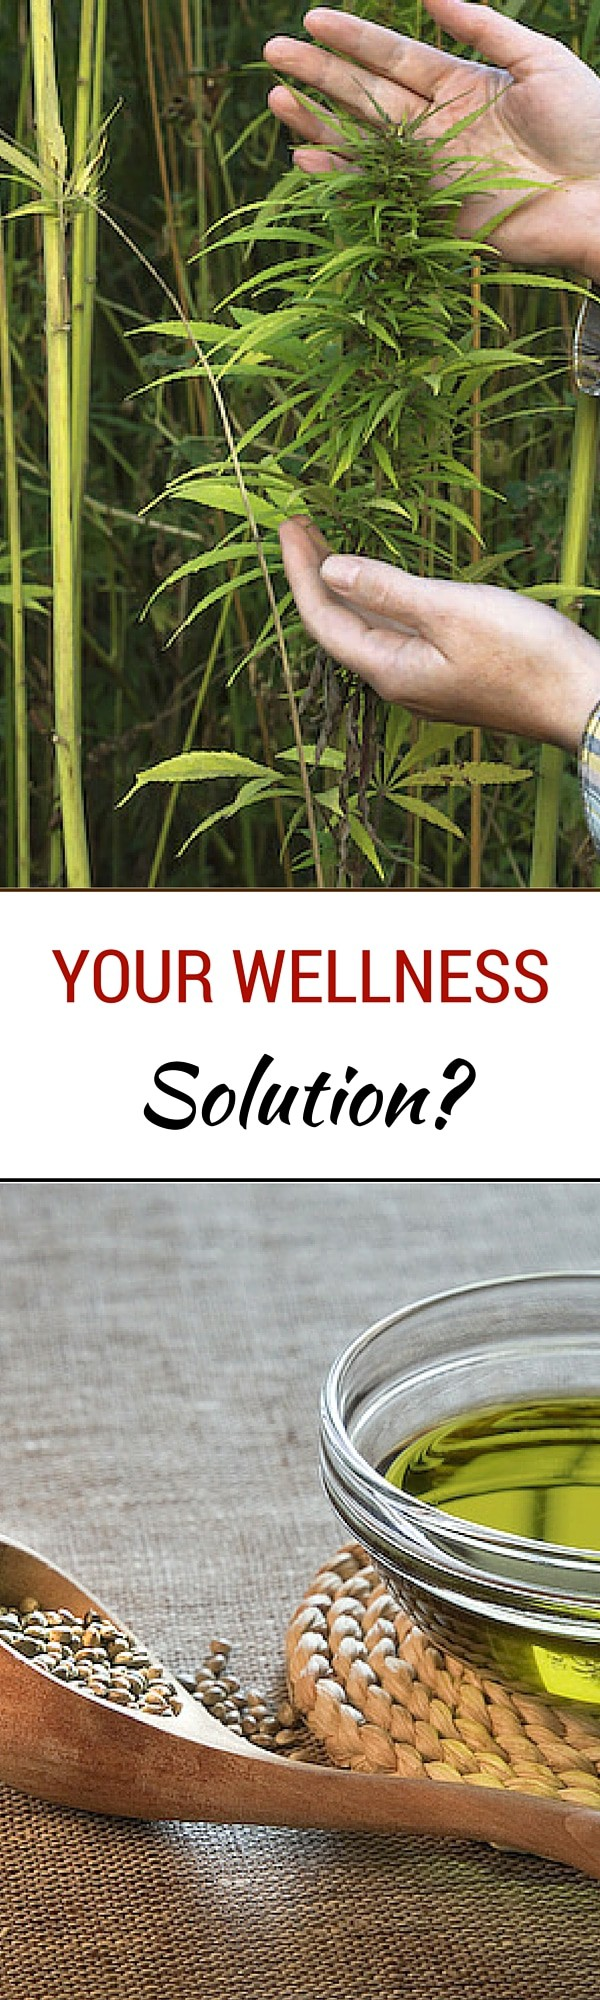 Your Wellness Solution LP